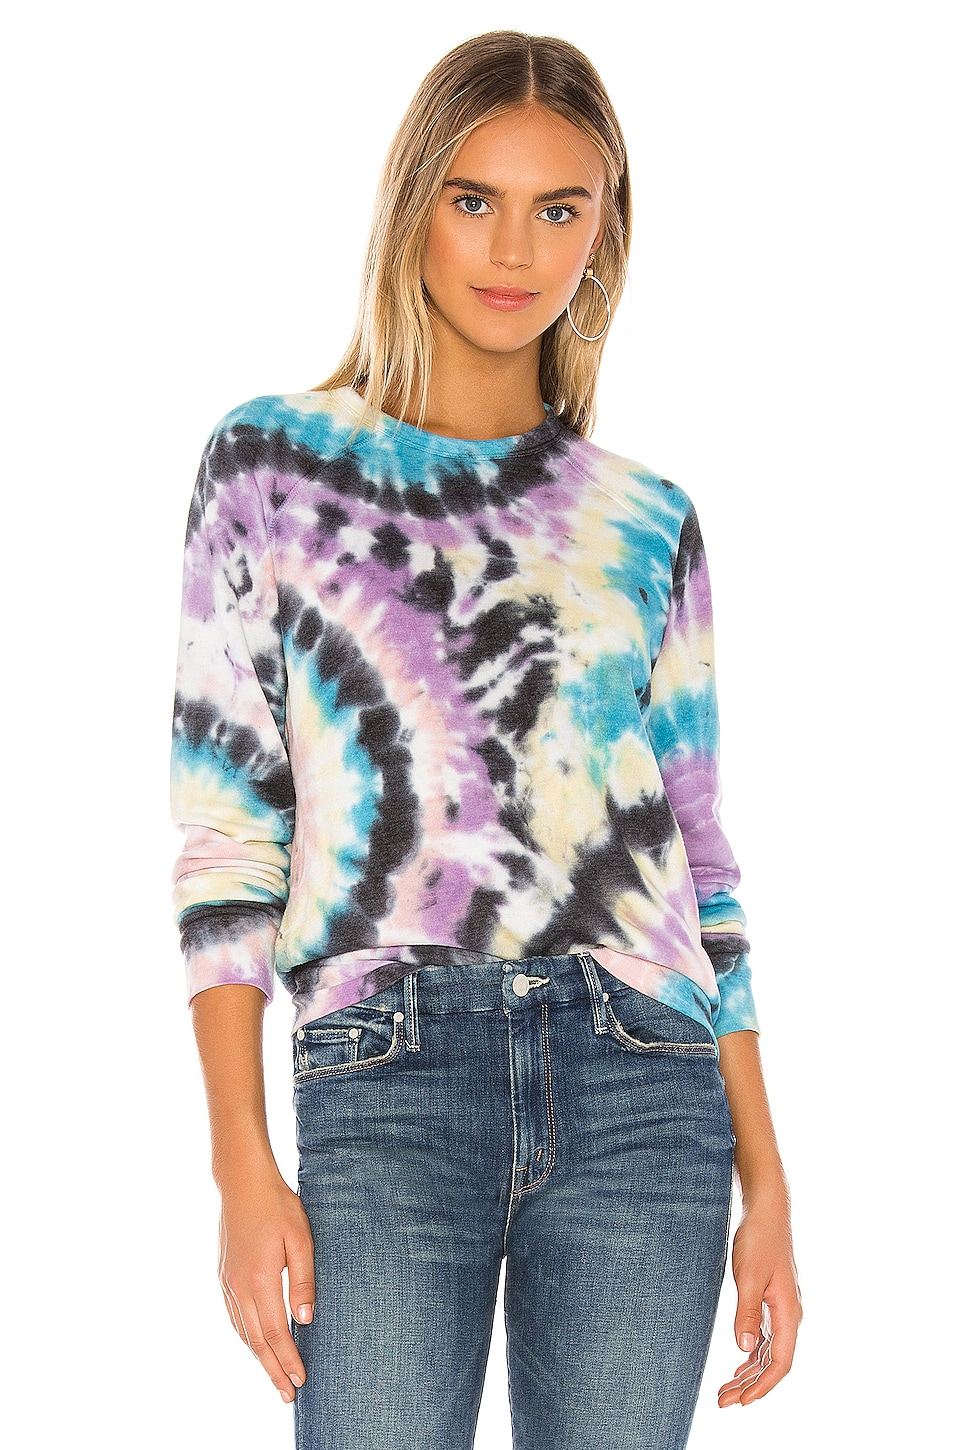 MOTHER The Hugger Sweatshirt in Swirling Secrets